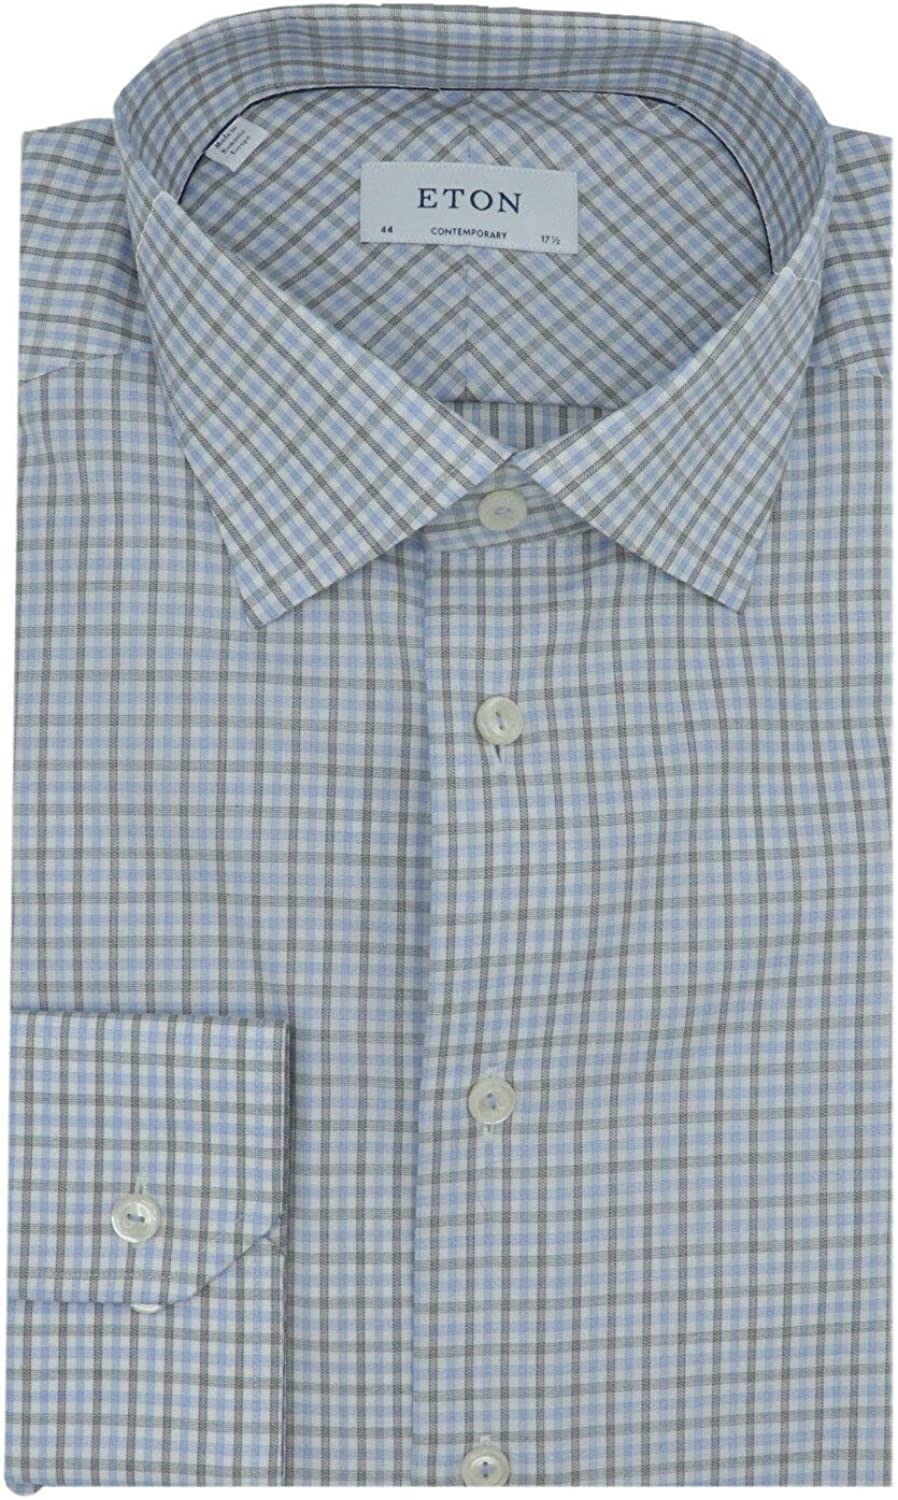 Eton Men's Blue and Black Contemporary Fit Checked Cotton-Tencel Shirt Casual Button-Down - 44-17.5 (XL)